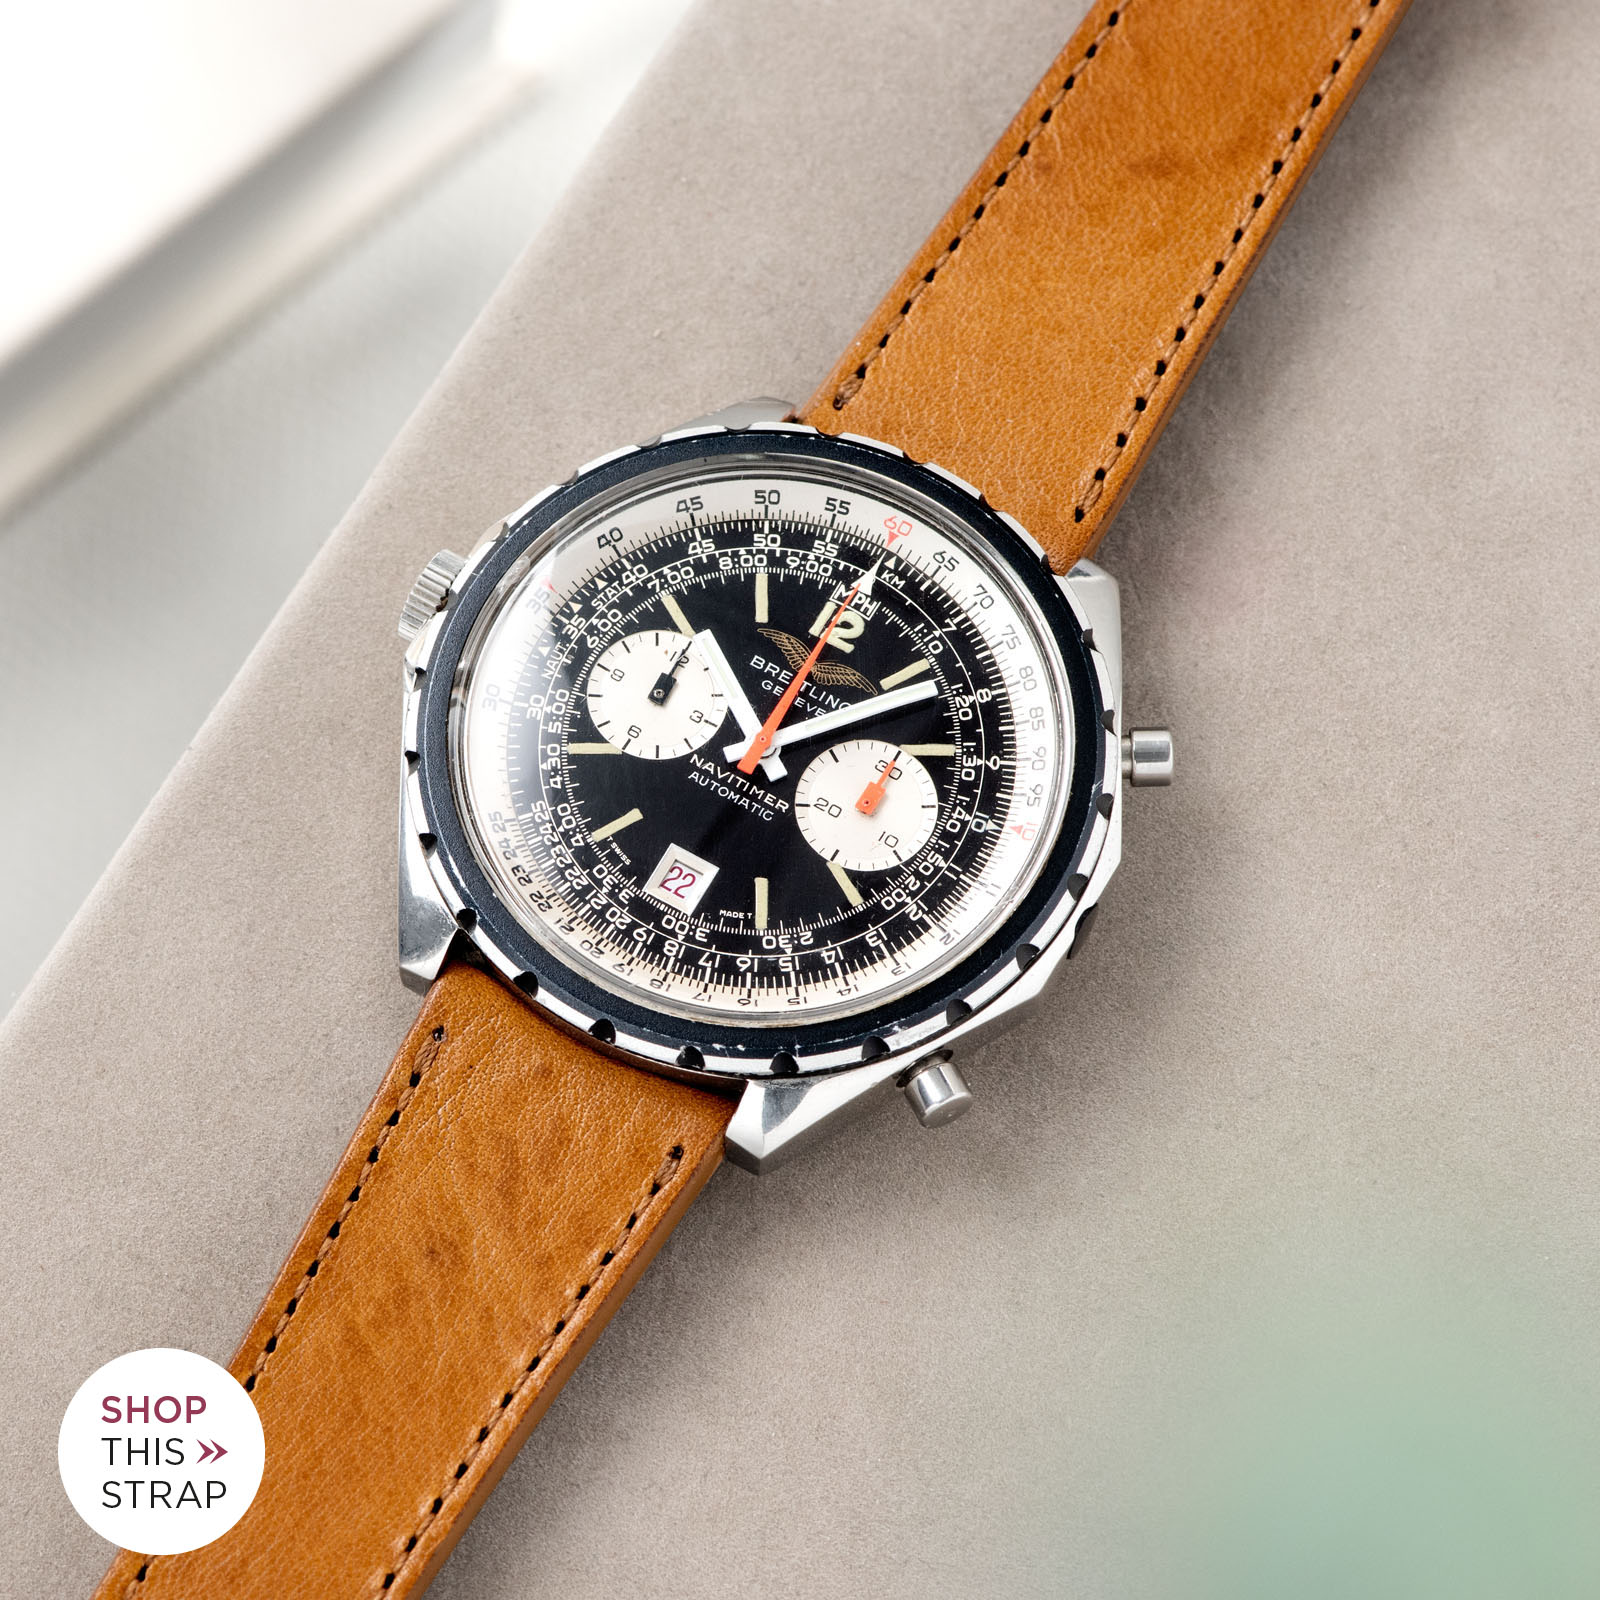 Bulang and Sons_Strapguide_Breitling Navitimer ref issued to iraqi air force ref 1806_Gilt Brown Tonal Leather Watch Strap _005